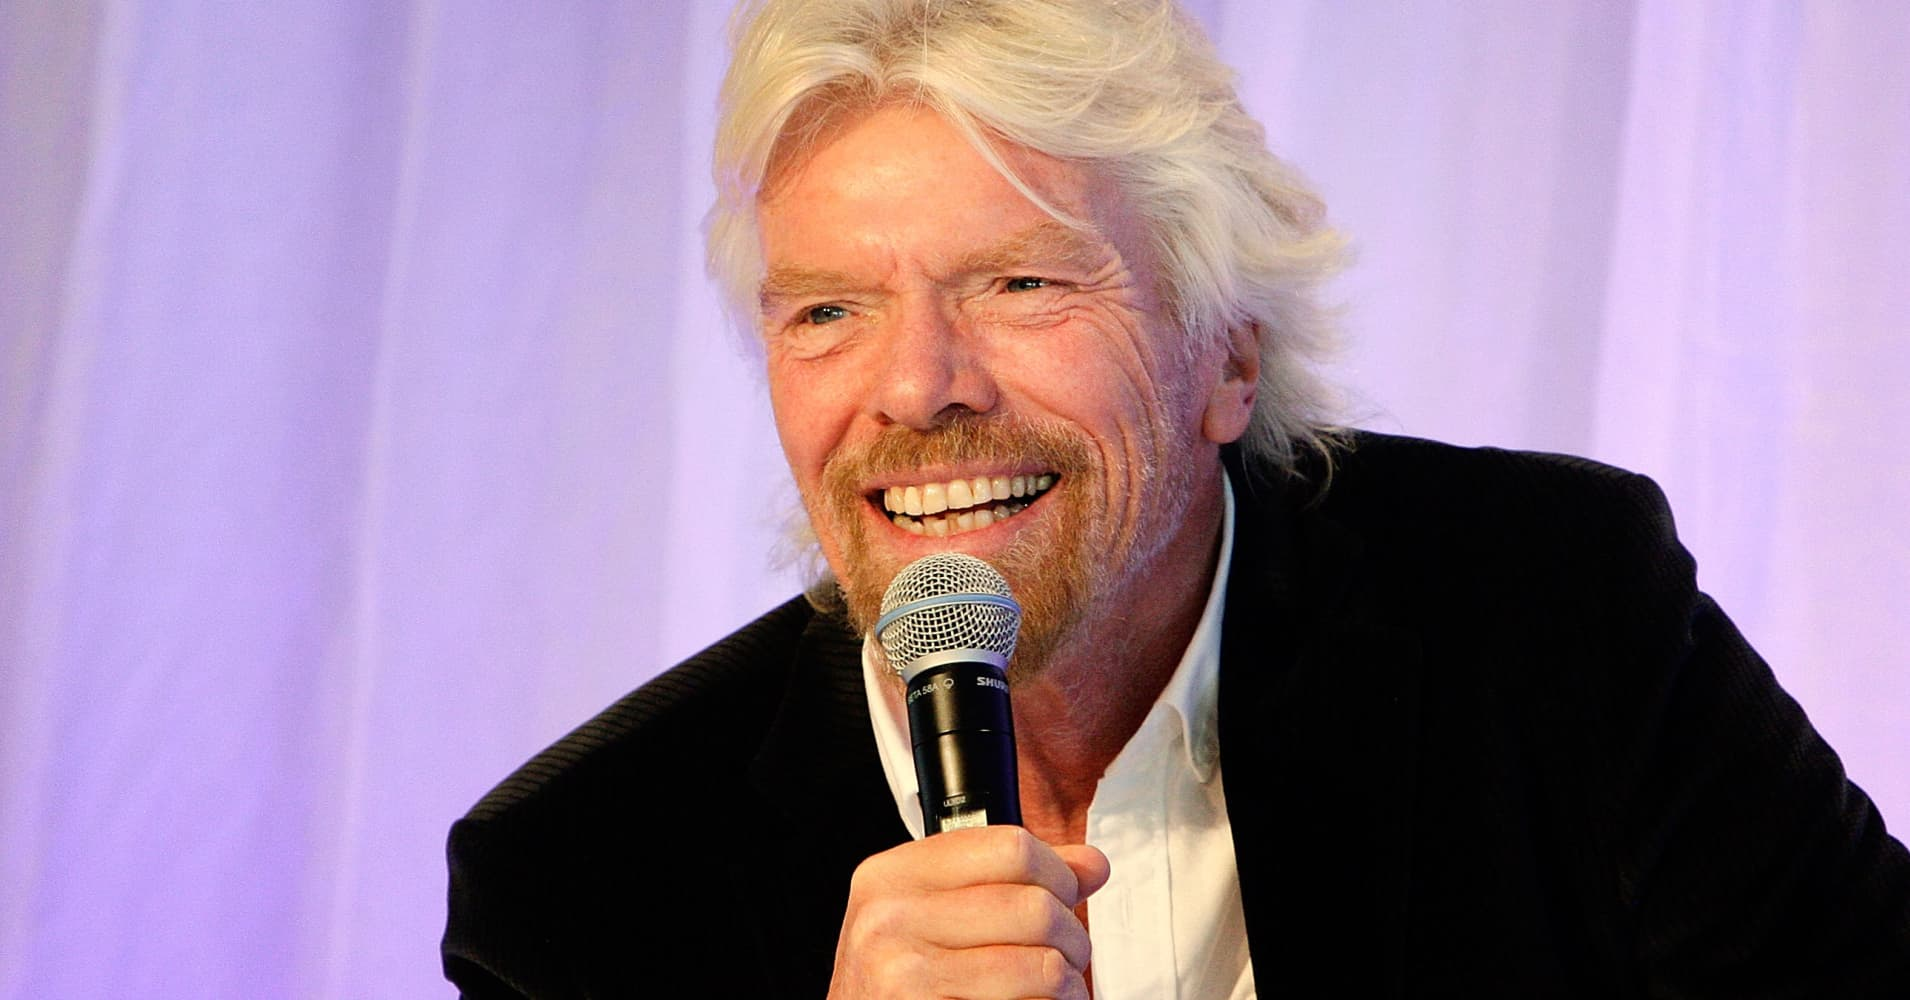 Virgin's Branson plans humanitarian aid concert on Venezuela border